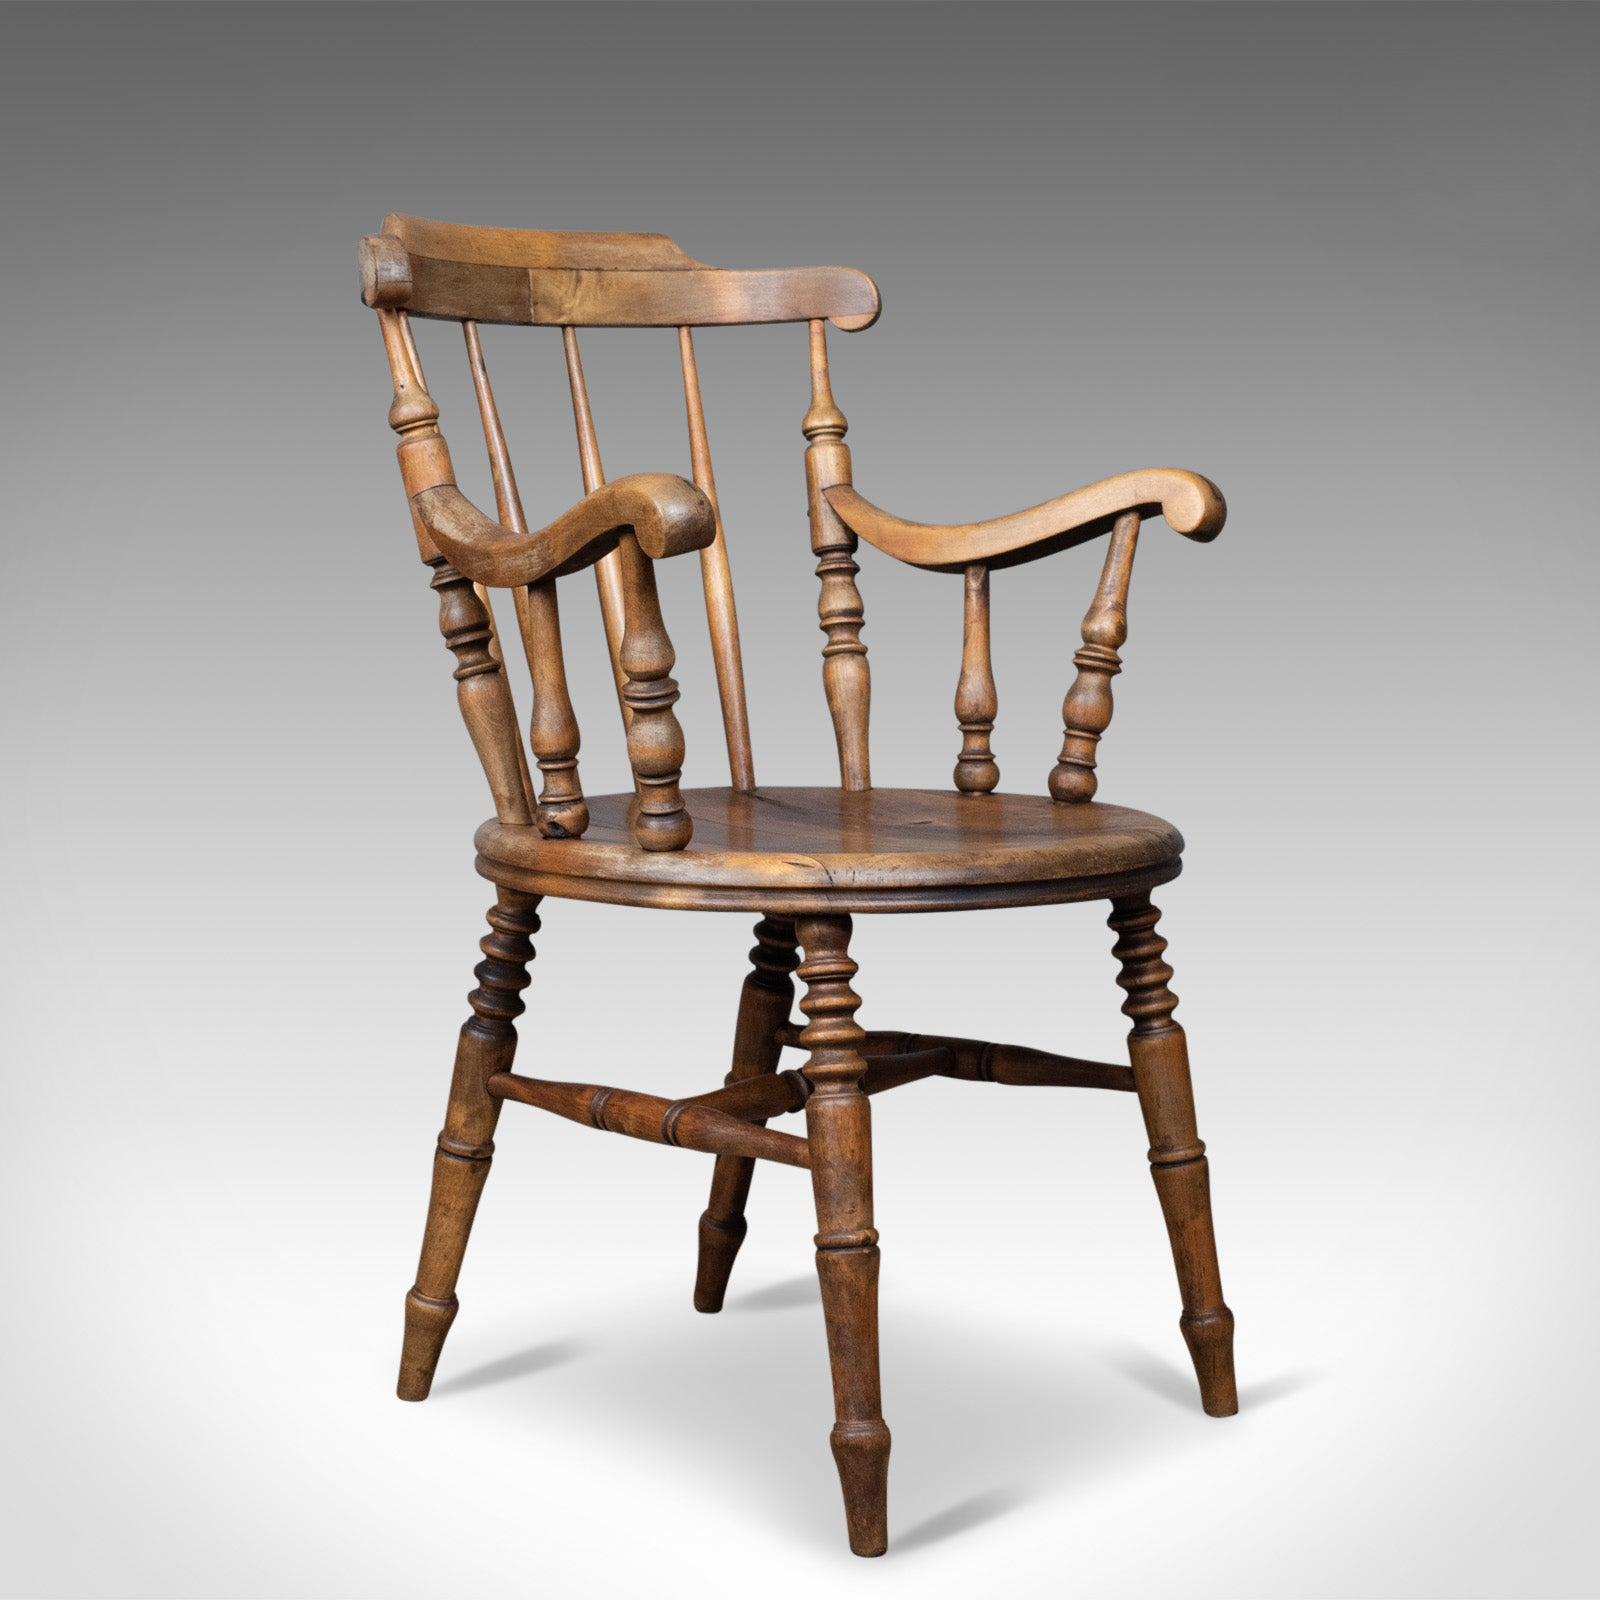 Details about Antique Elbow Chair, English, Victorian, Country Kitchen,  Armchair, Circa 8